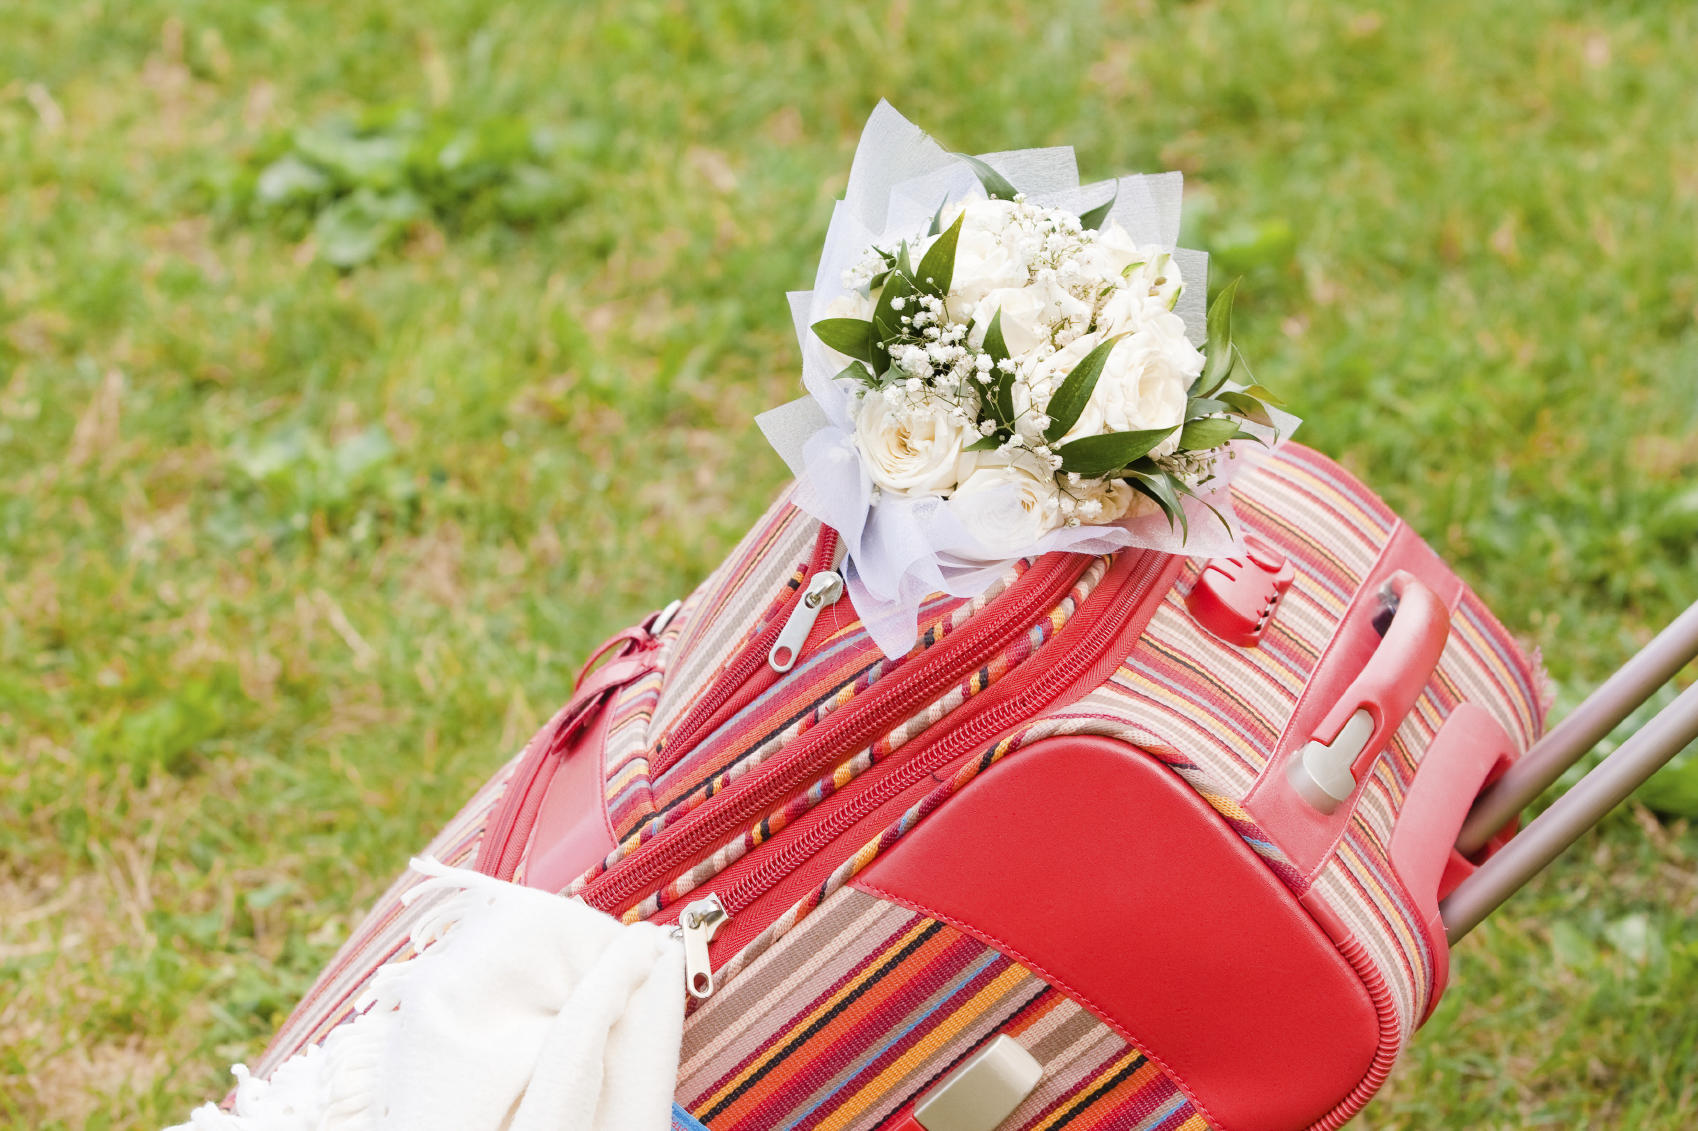 Packed suitcase with bridal bouquet and white planket is ready for honeymoon